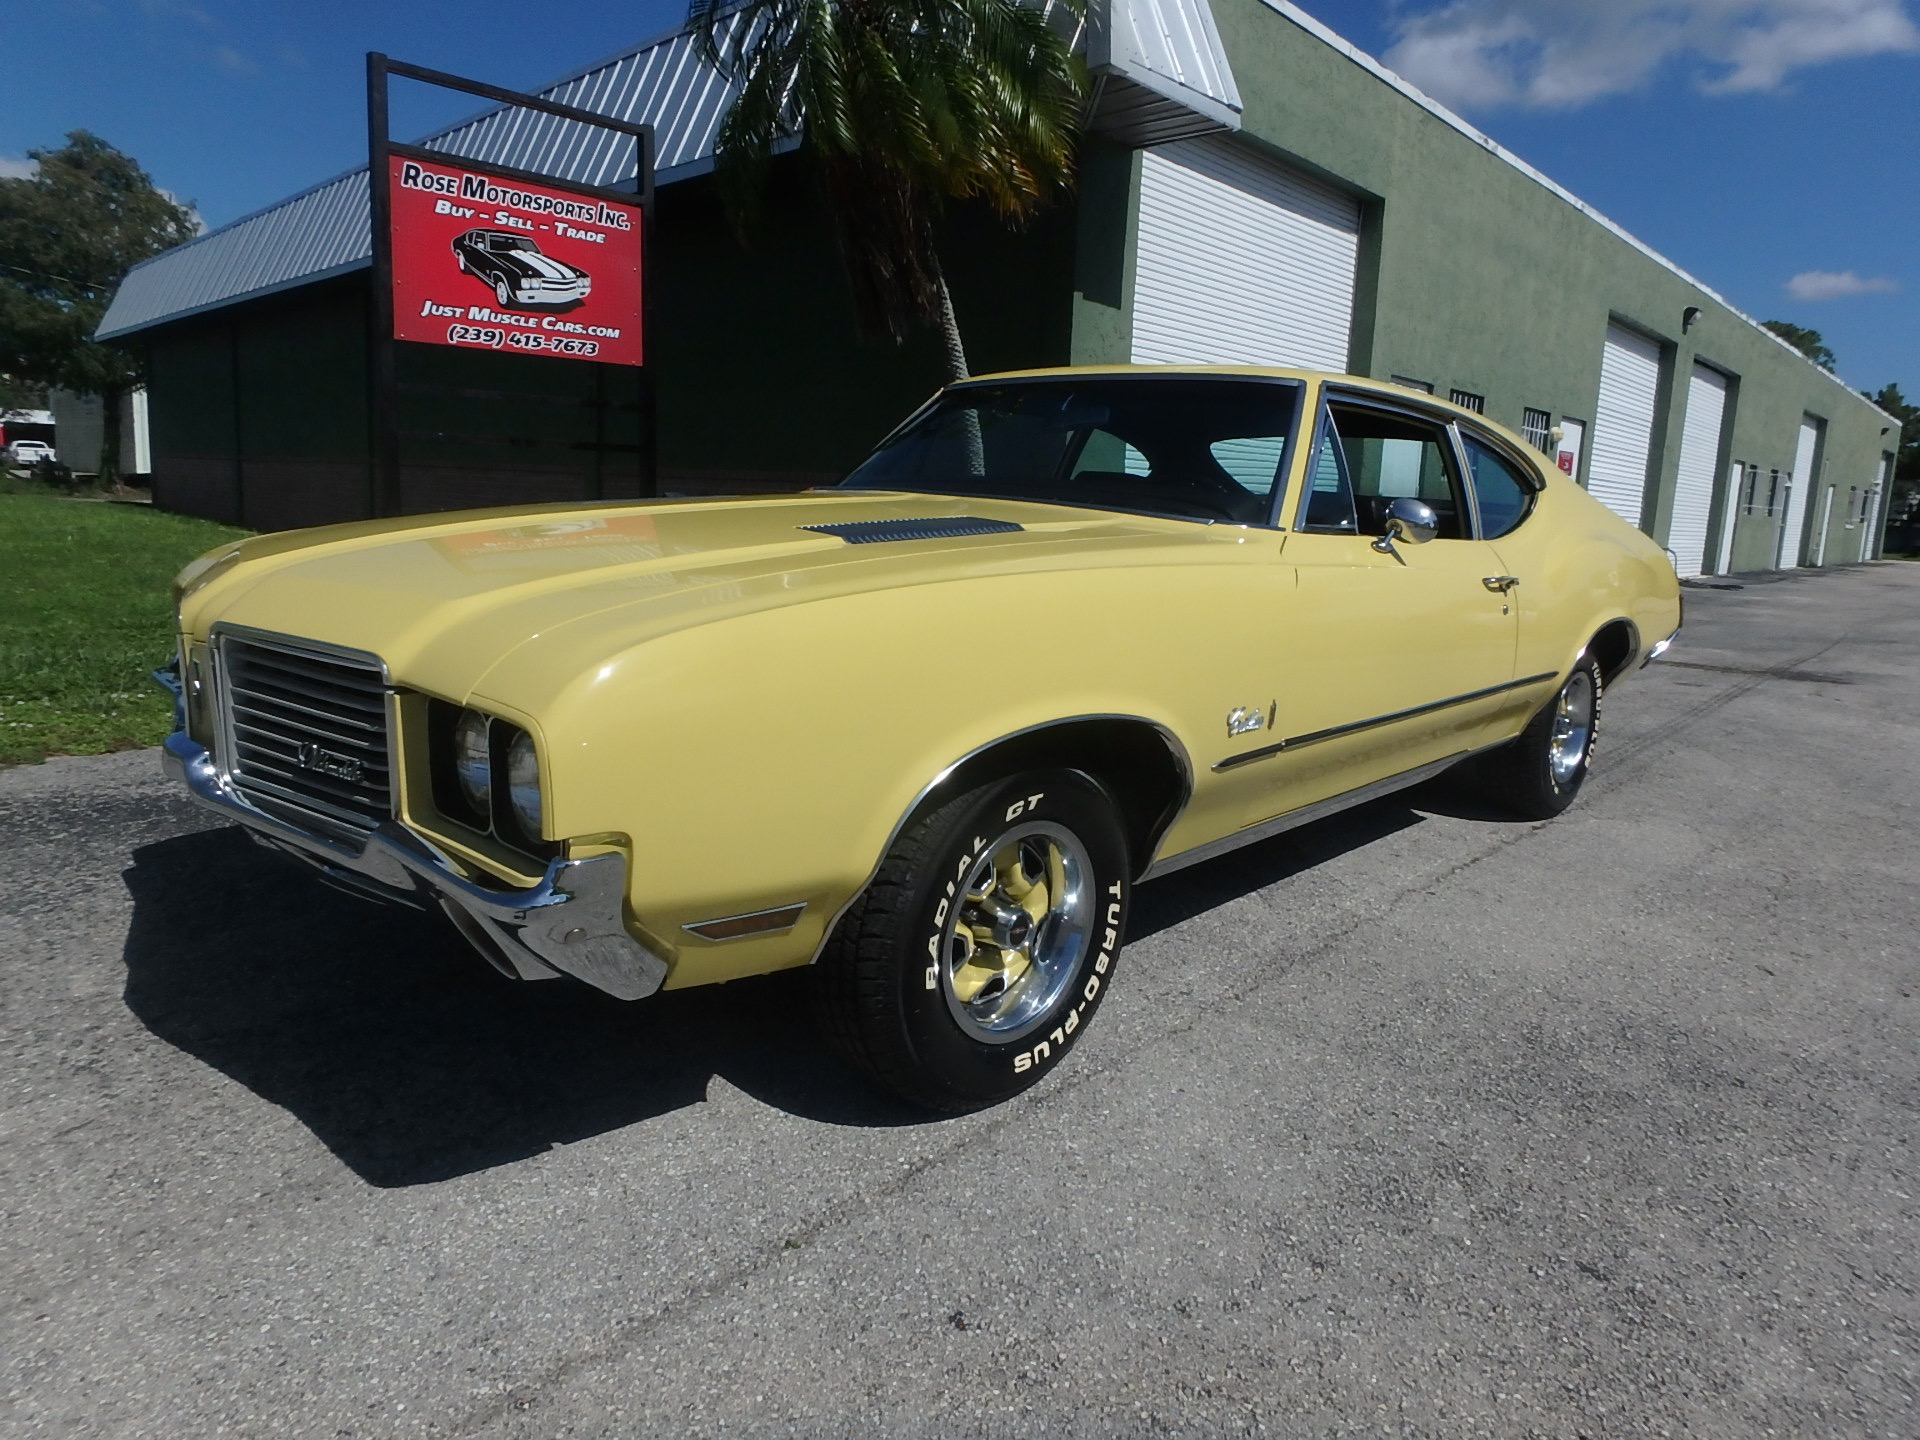 Used-1972-Olds-Cutlass